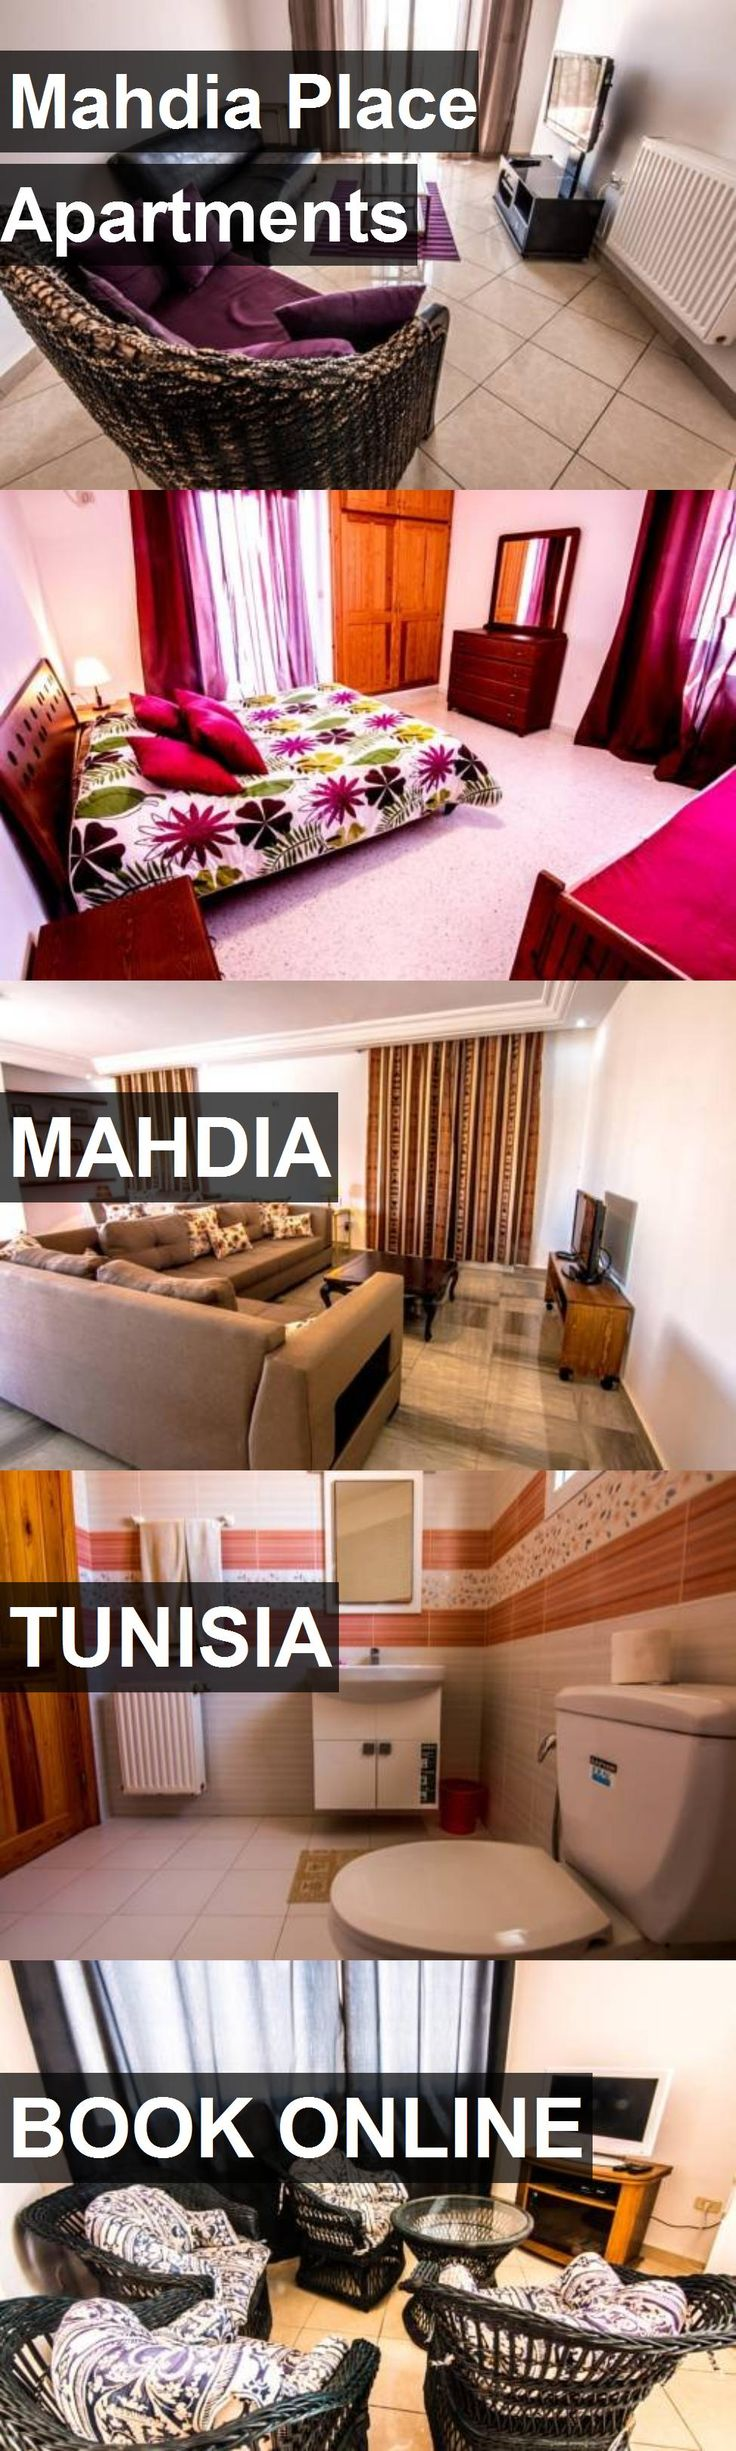 Mahdia Place Apartments in Mahdia, Tunisia. For more information, photos, reviews and best prices please follow the link. #Tunisia #Mahdia #travel #vacation #apartment